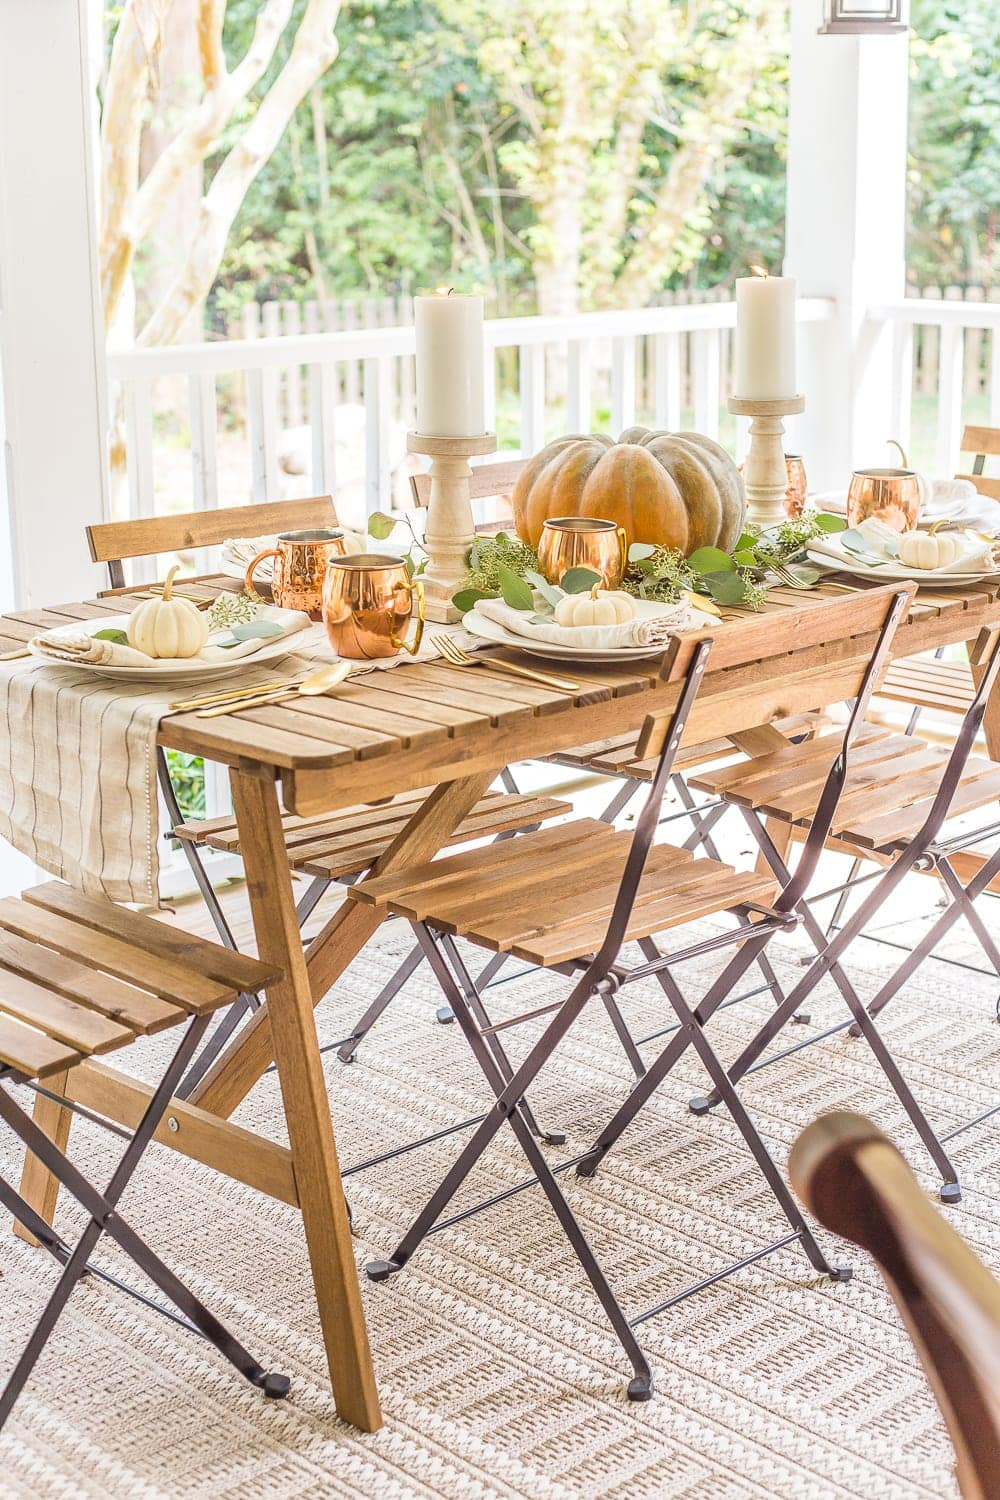 outdoor dining table decorated for fall with pumpkin centerpiece, eucalyptus, and copper